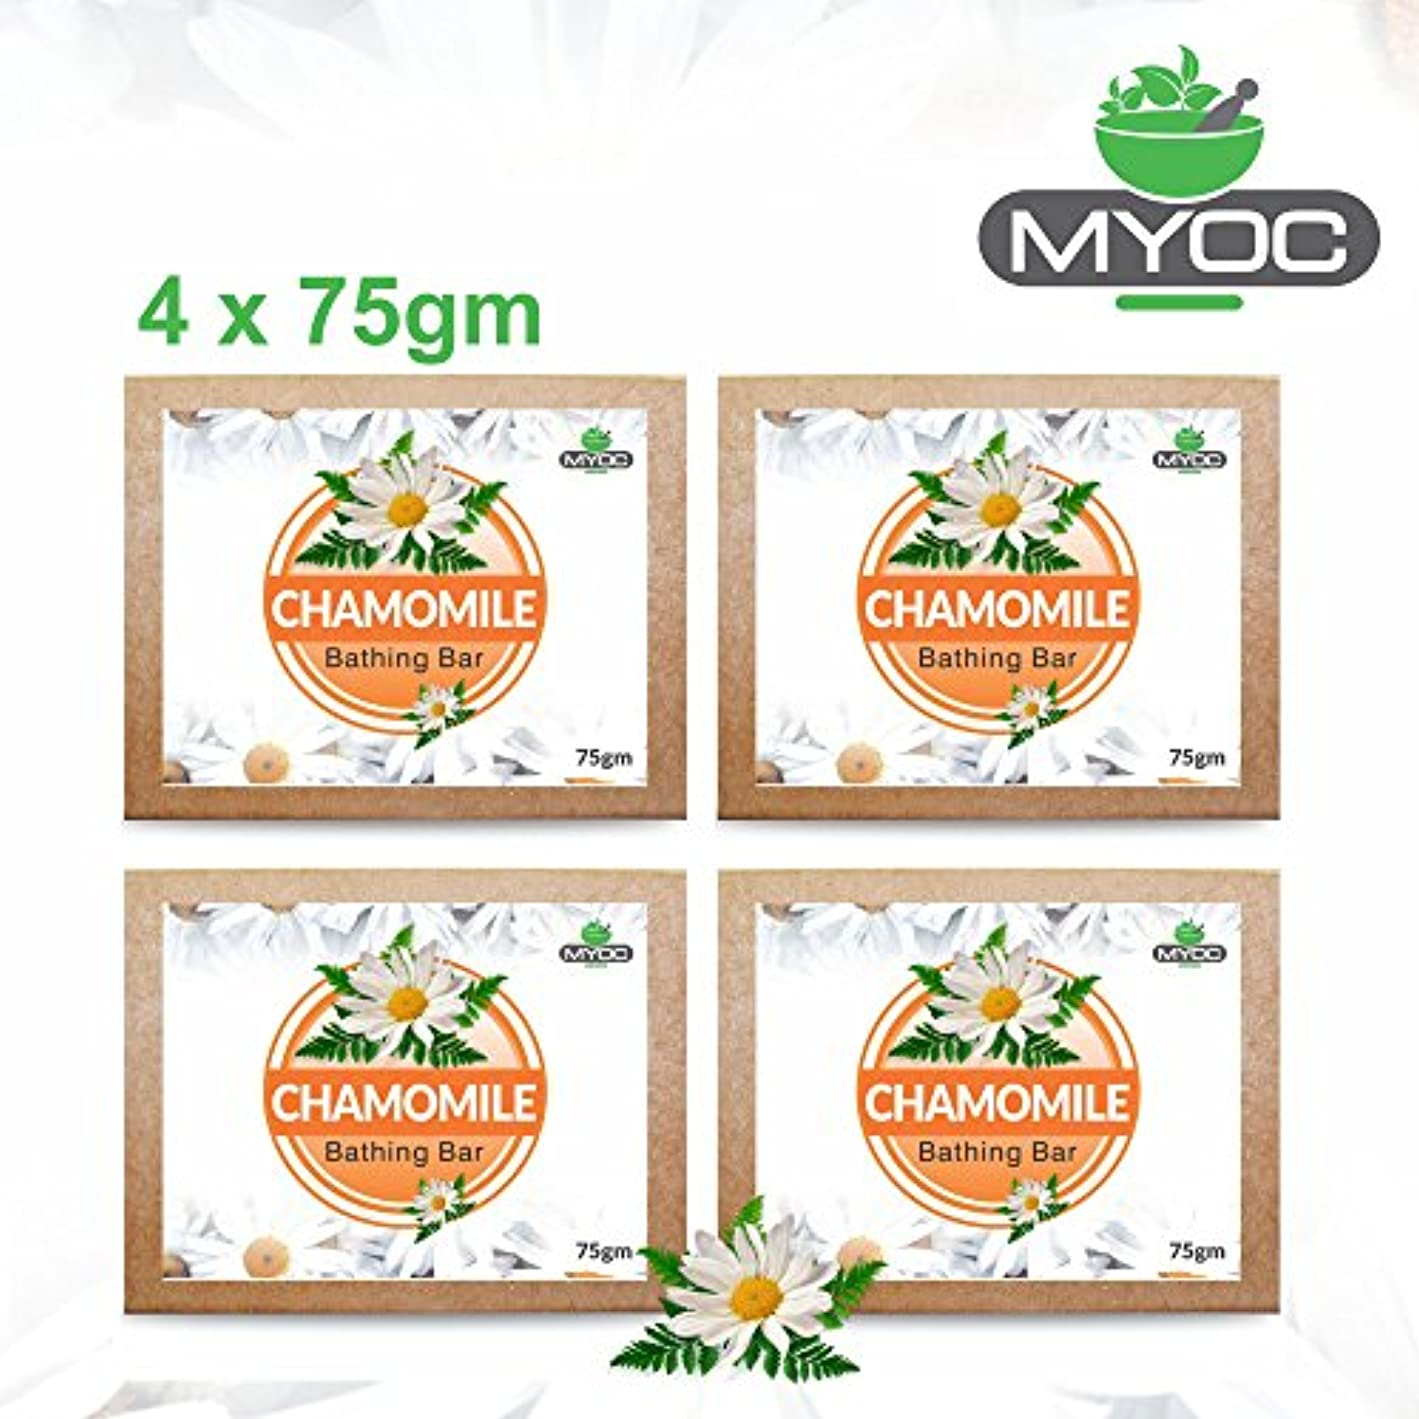 ドレイン被る立場Chamomile Extract, Vitamin E and Glycerine soap for sensitive skin, dry skin and eczema 75gm x 4 Pack